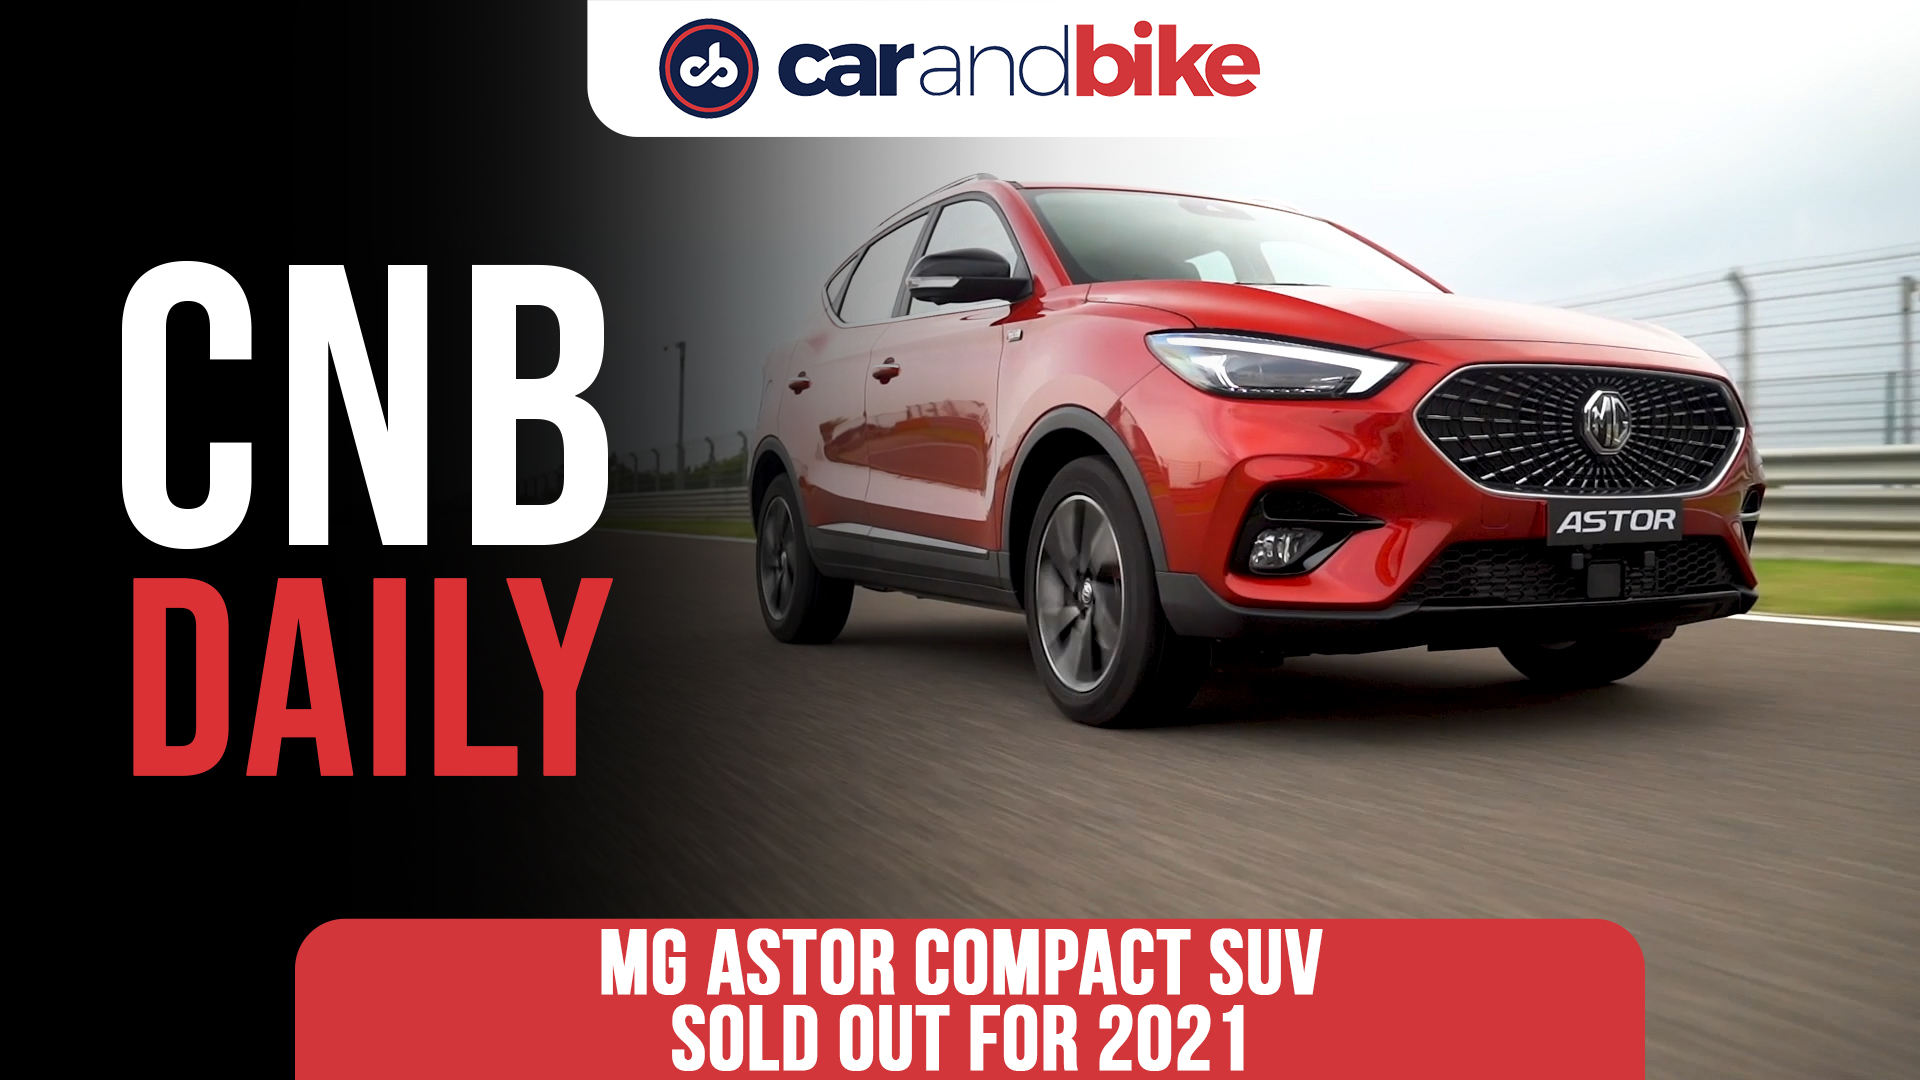 MG Astor Compact SUV Sold Out For 2021